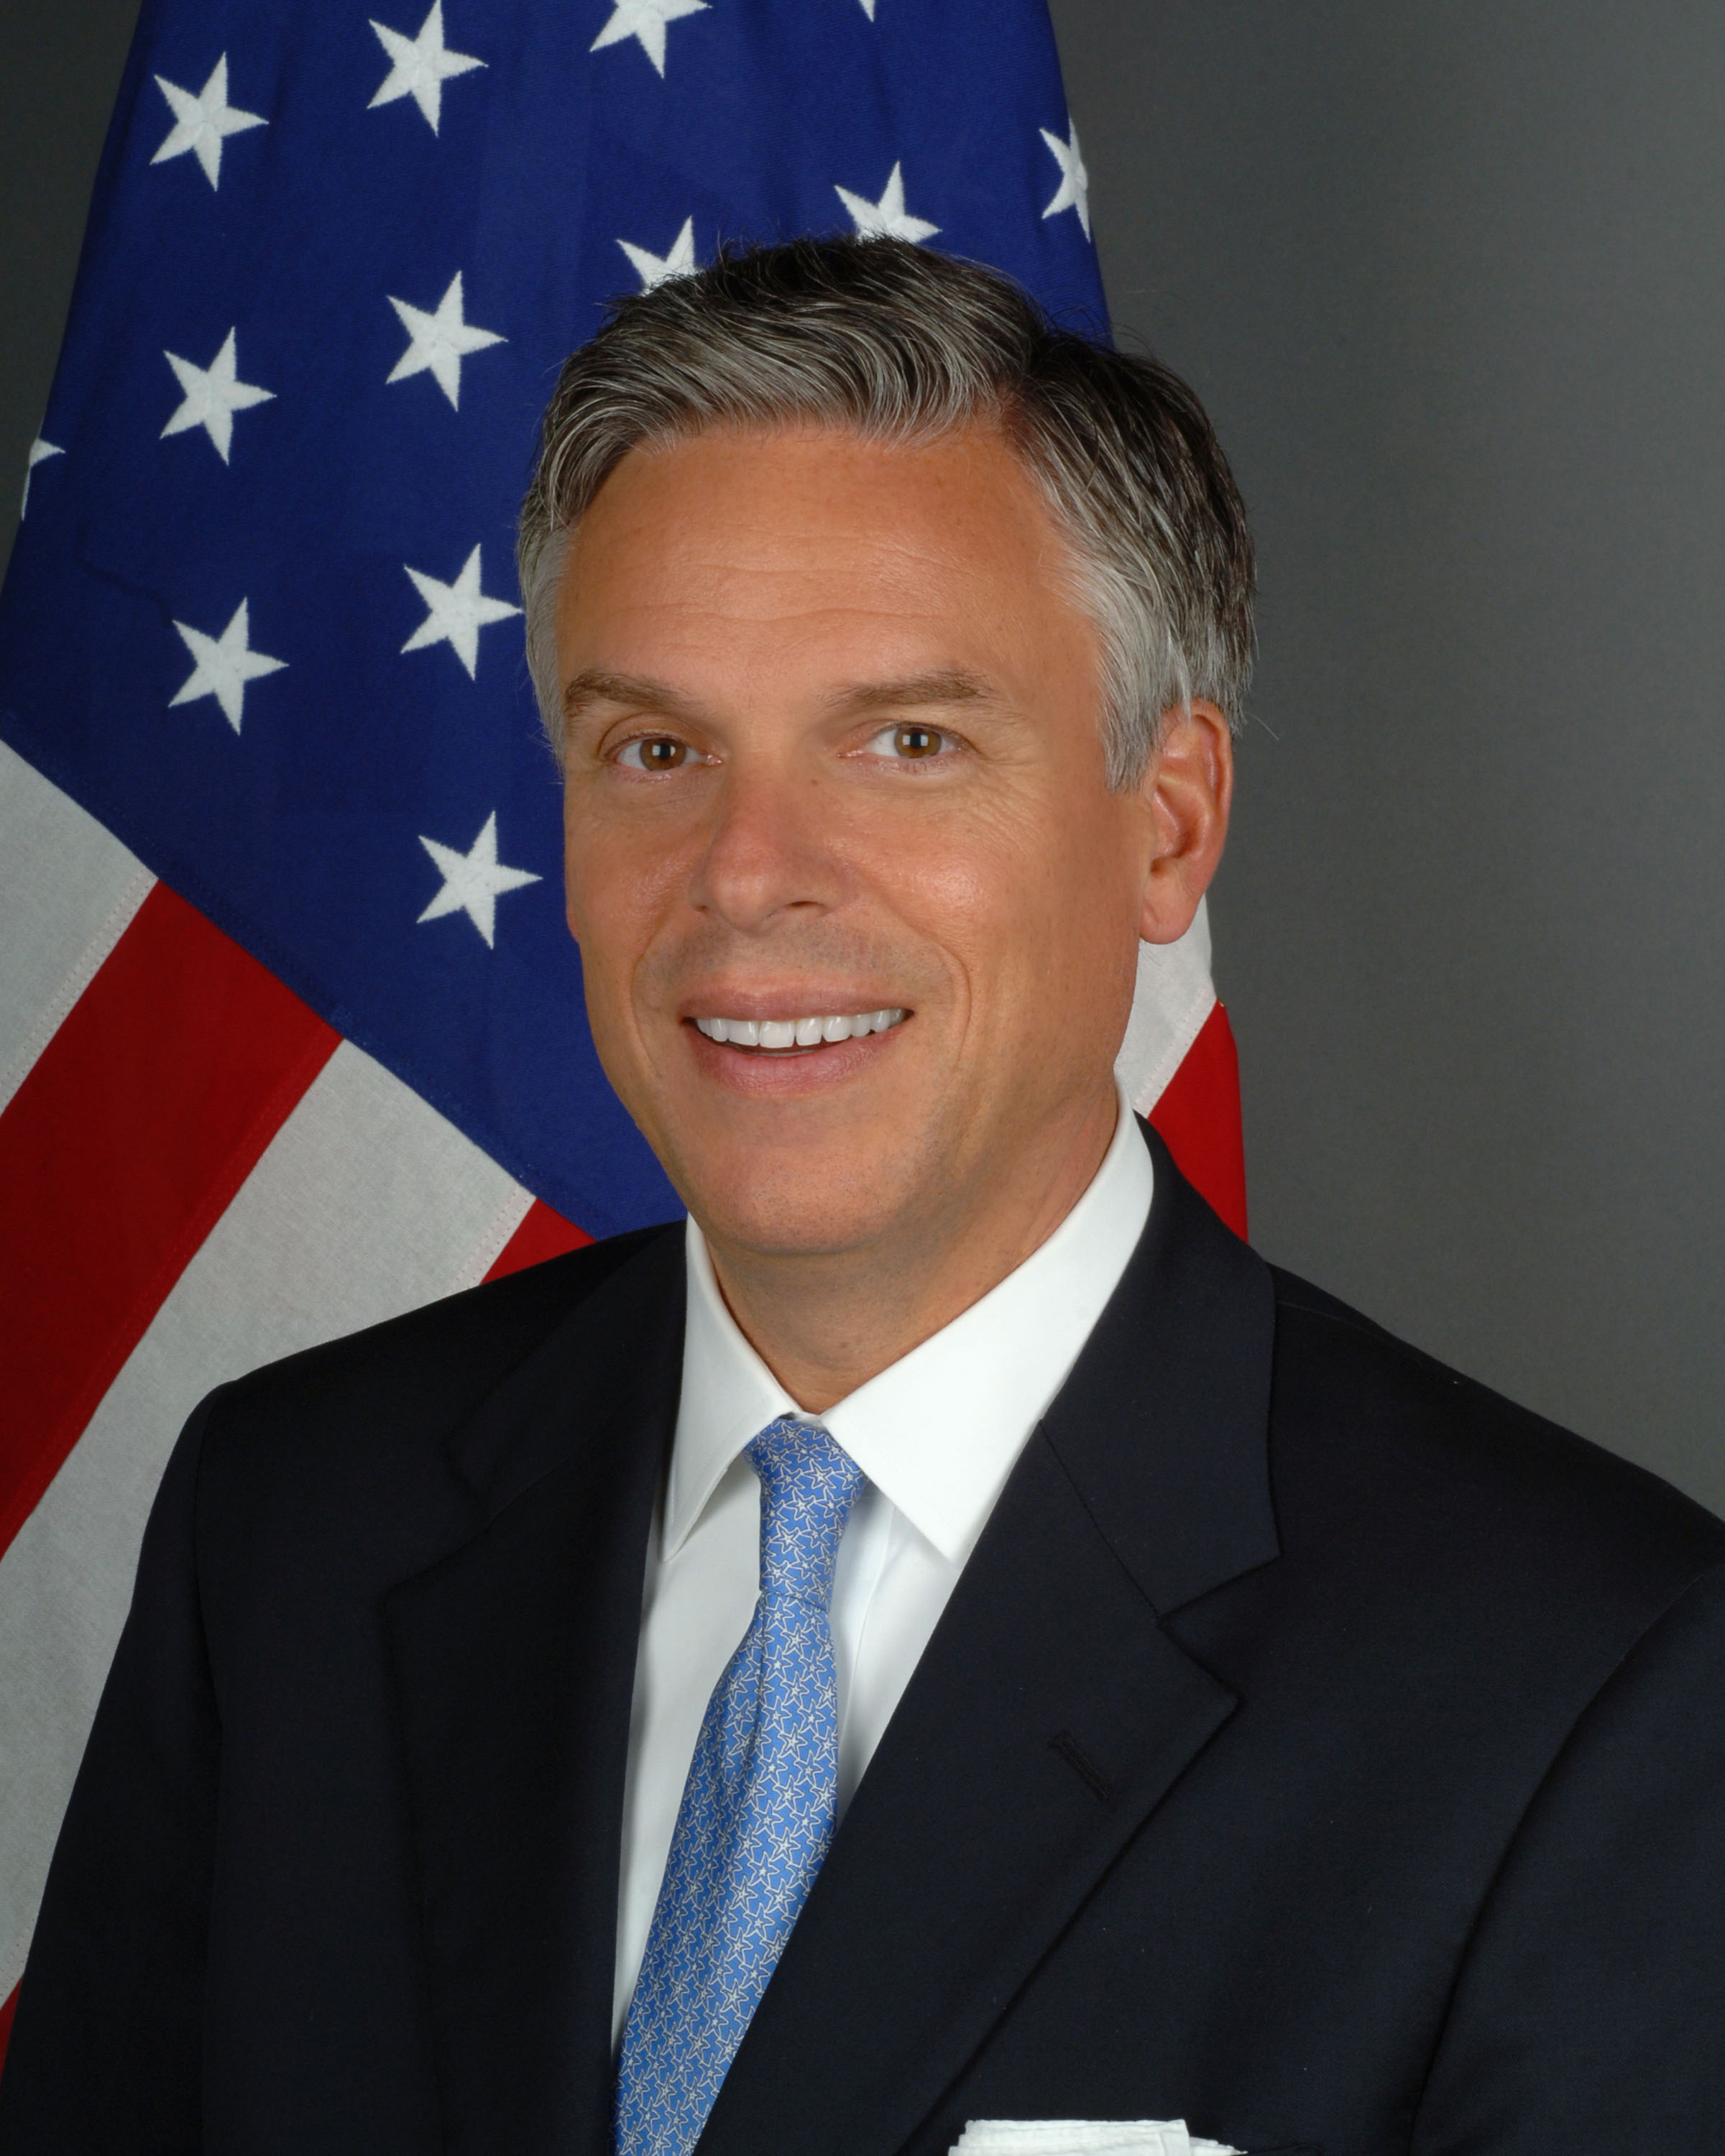 Ambassador Jon Huntsman SC The State Newspaper Endorses Jon Huntsman for GOP Presidential Nominee: He Could Bring Us Back Together